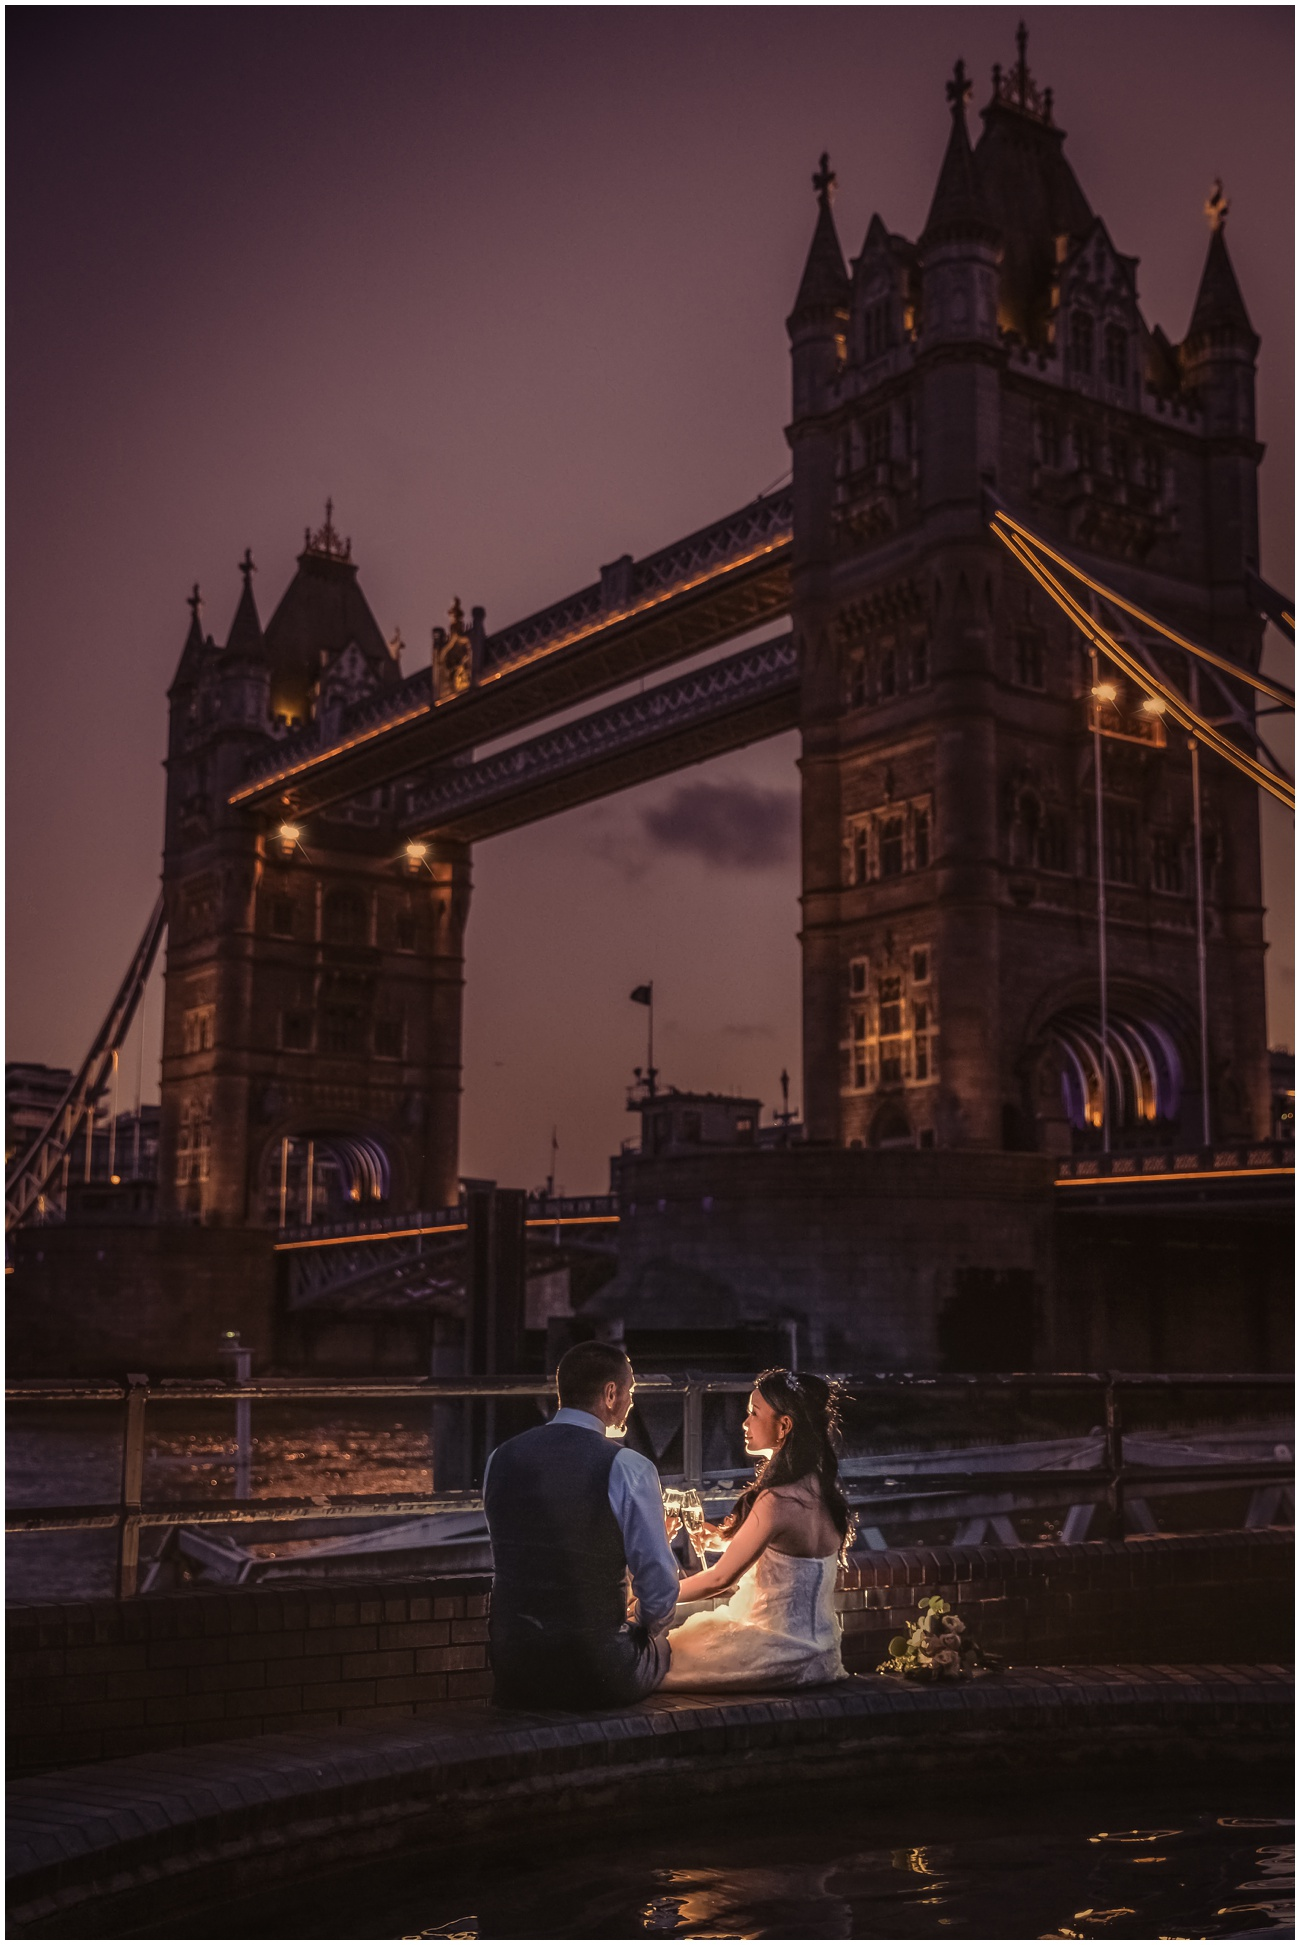 An evening portrait of the couple sitting drinking champagne next to the Tower Bridge